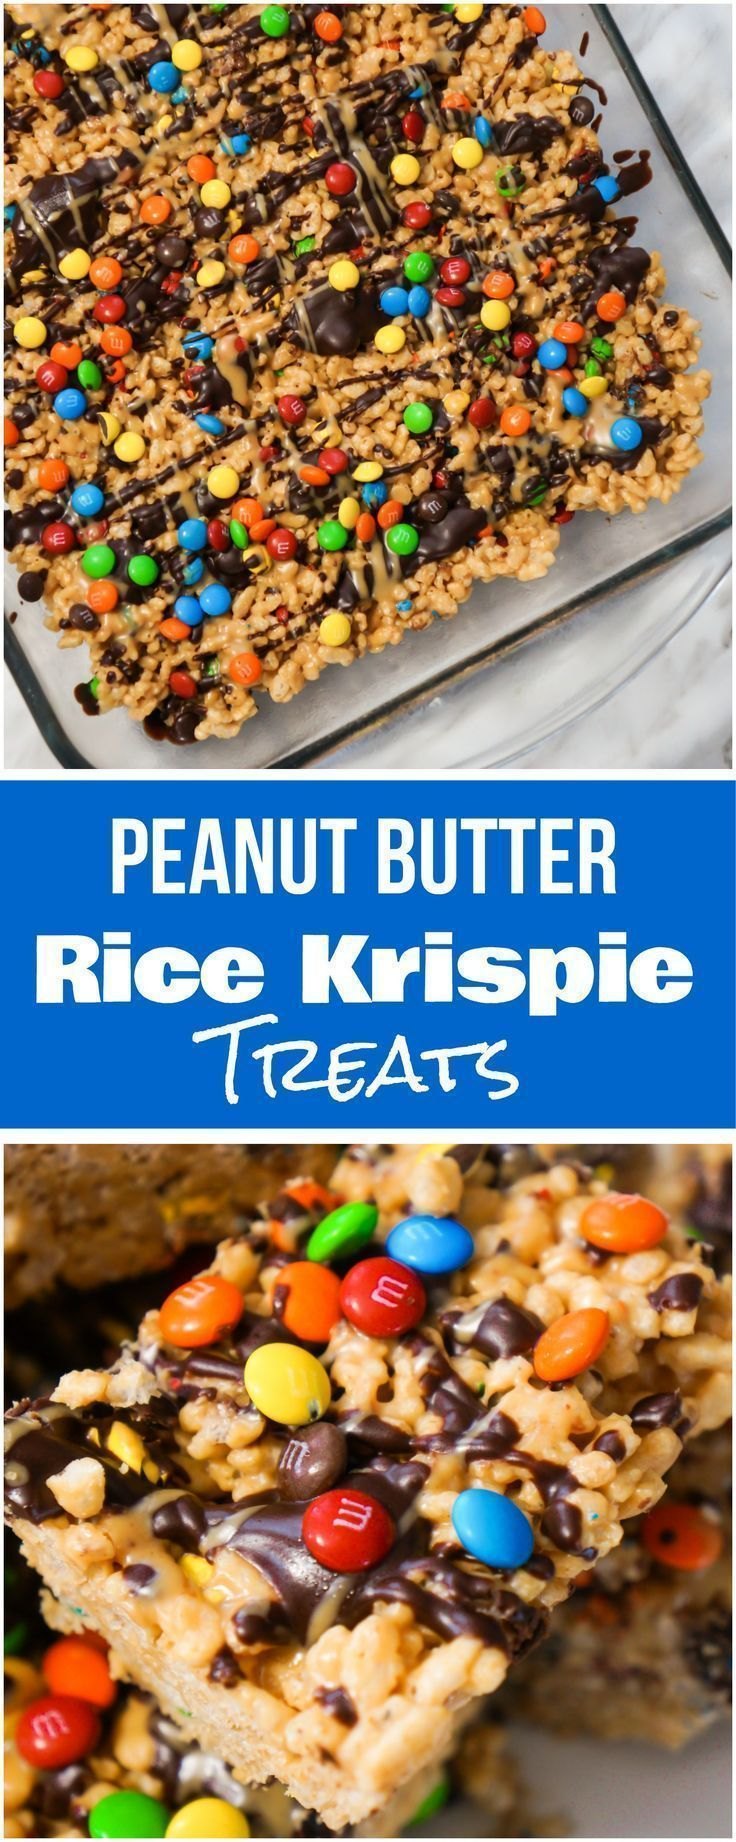 Peanut Butter Rice Krispie Treats. Easy chocolate peanut butter dessert recipe. Rice Krispie squares loaded with M&Ms.